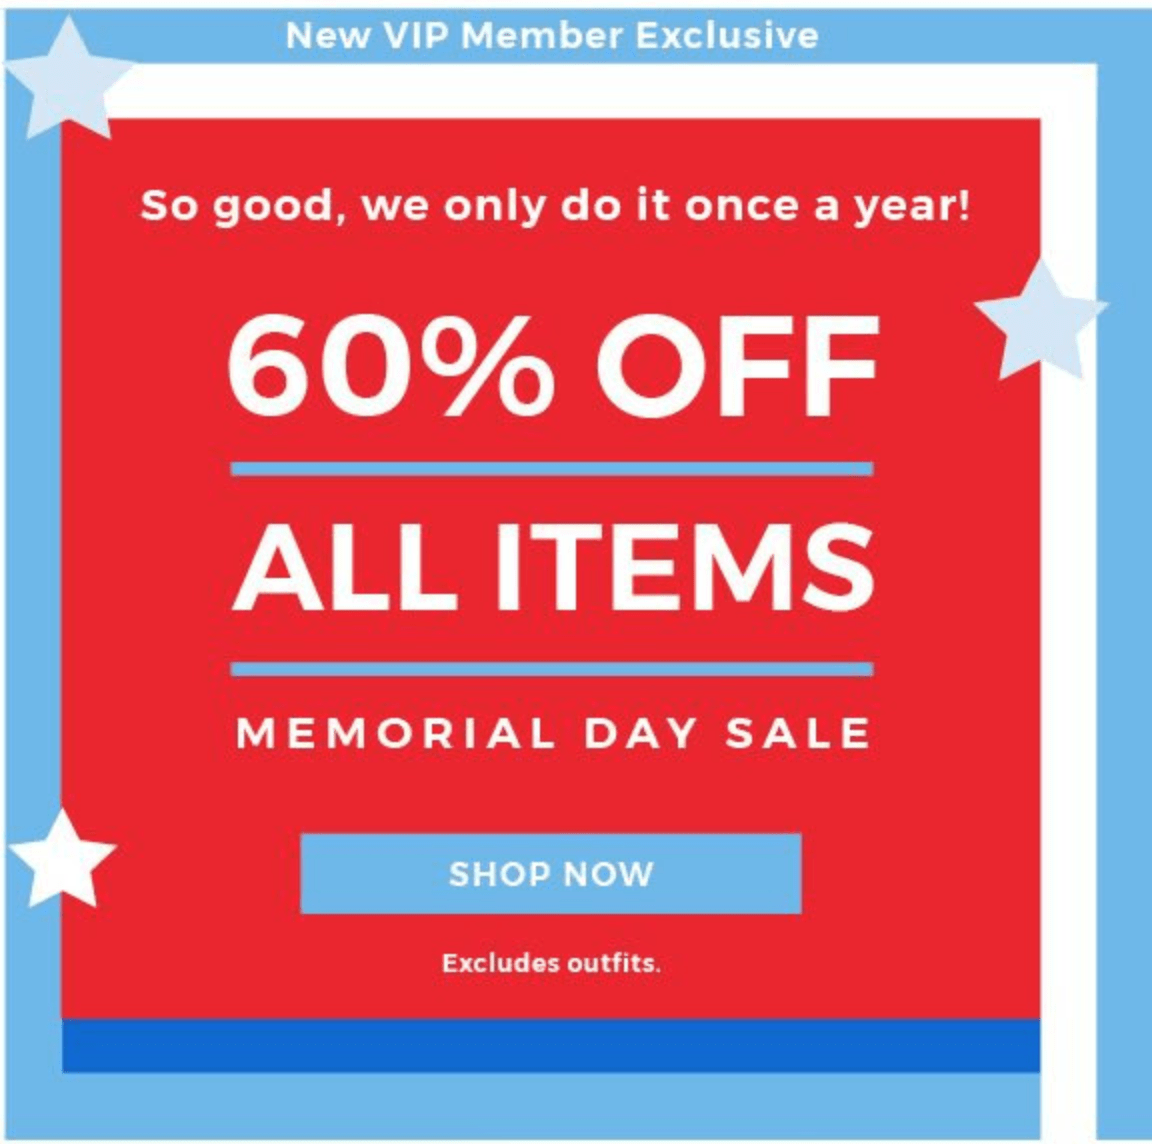 Fabletics New VIP Member Memorial Day Sale – Save 60% Off!